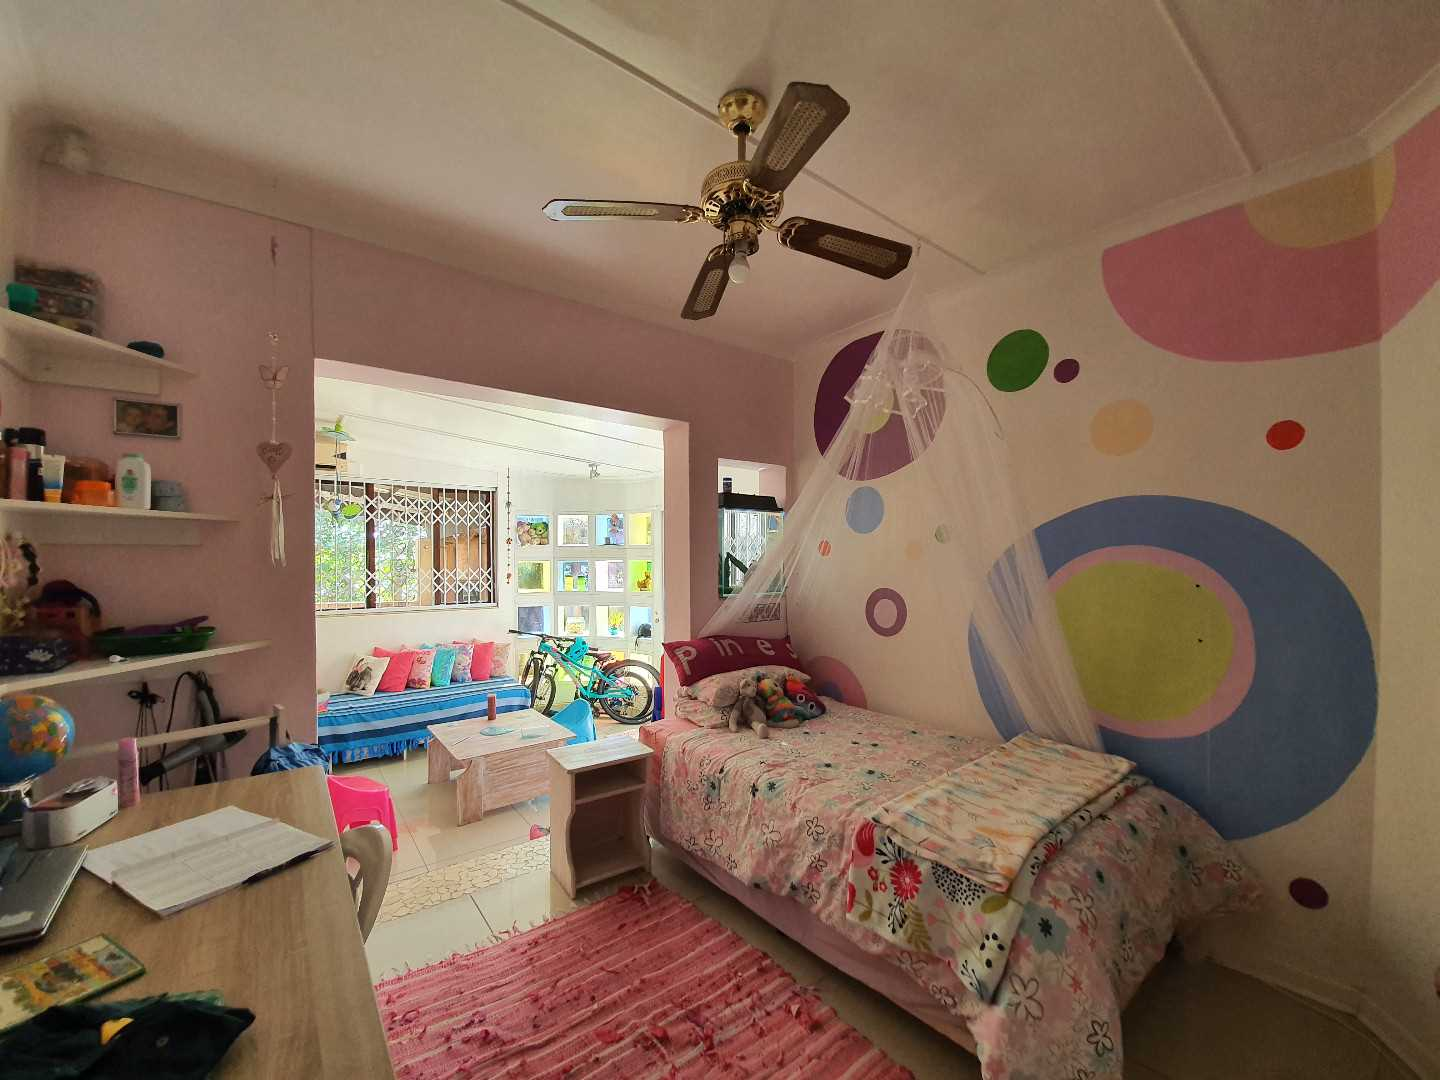 Bedroom 2 with play area